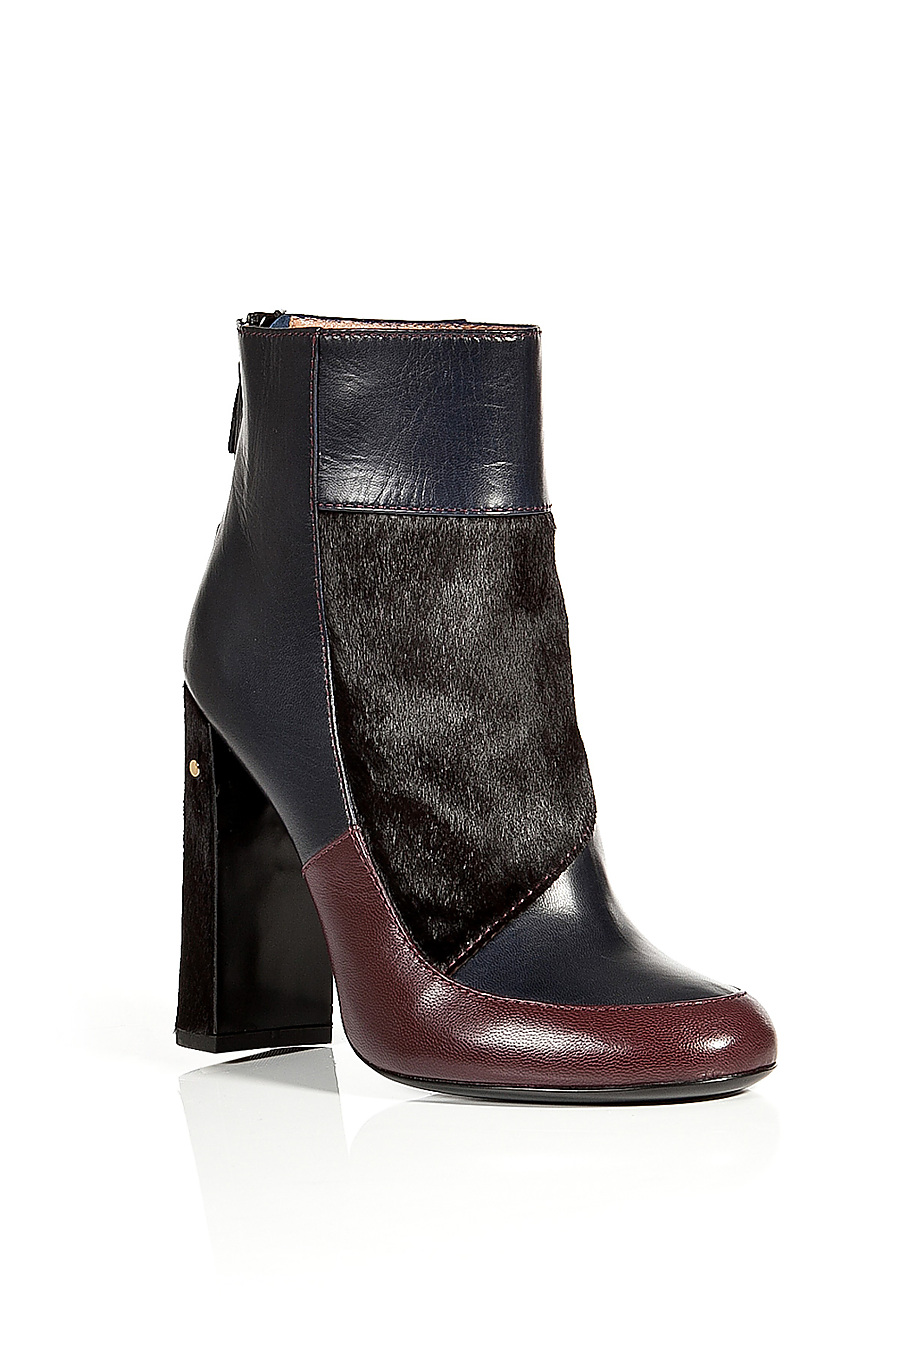 LAURENCE DACADE Leather/Haircalf Patchwork Ankle Boots